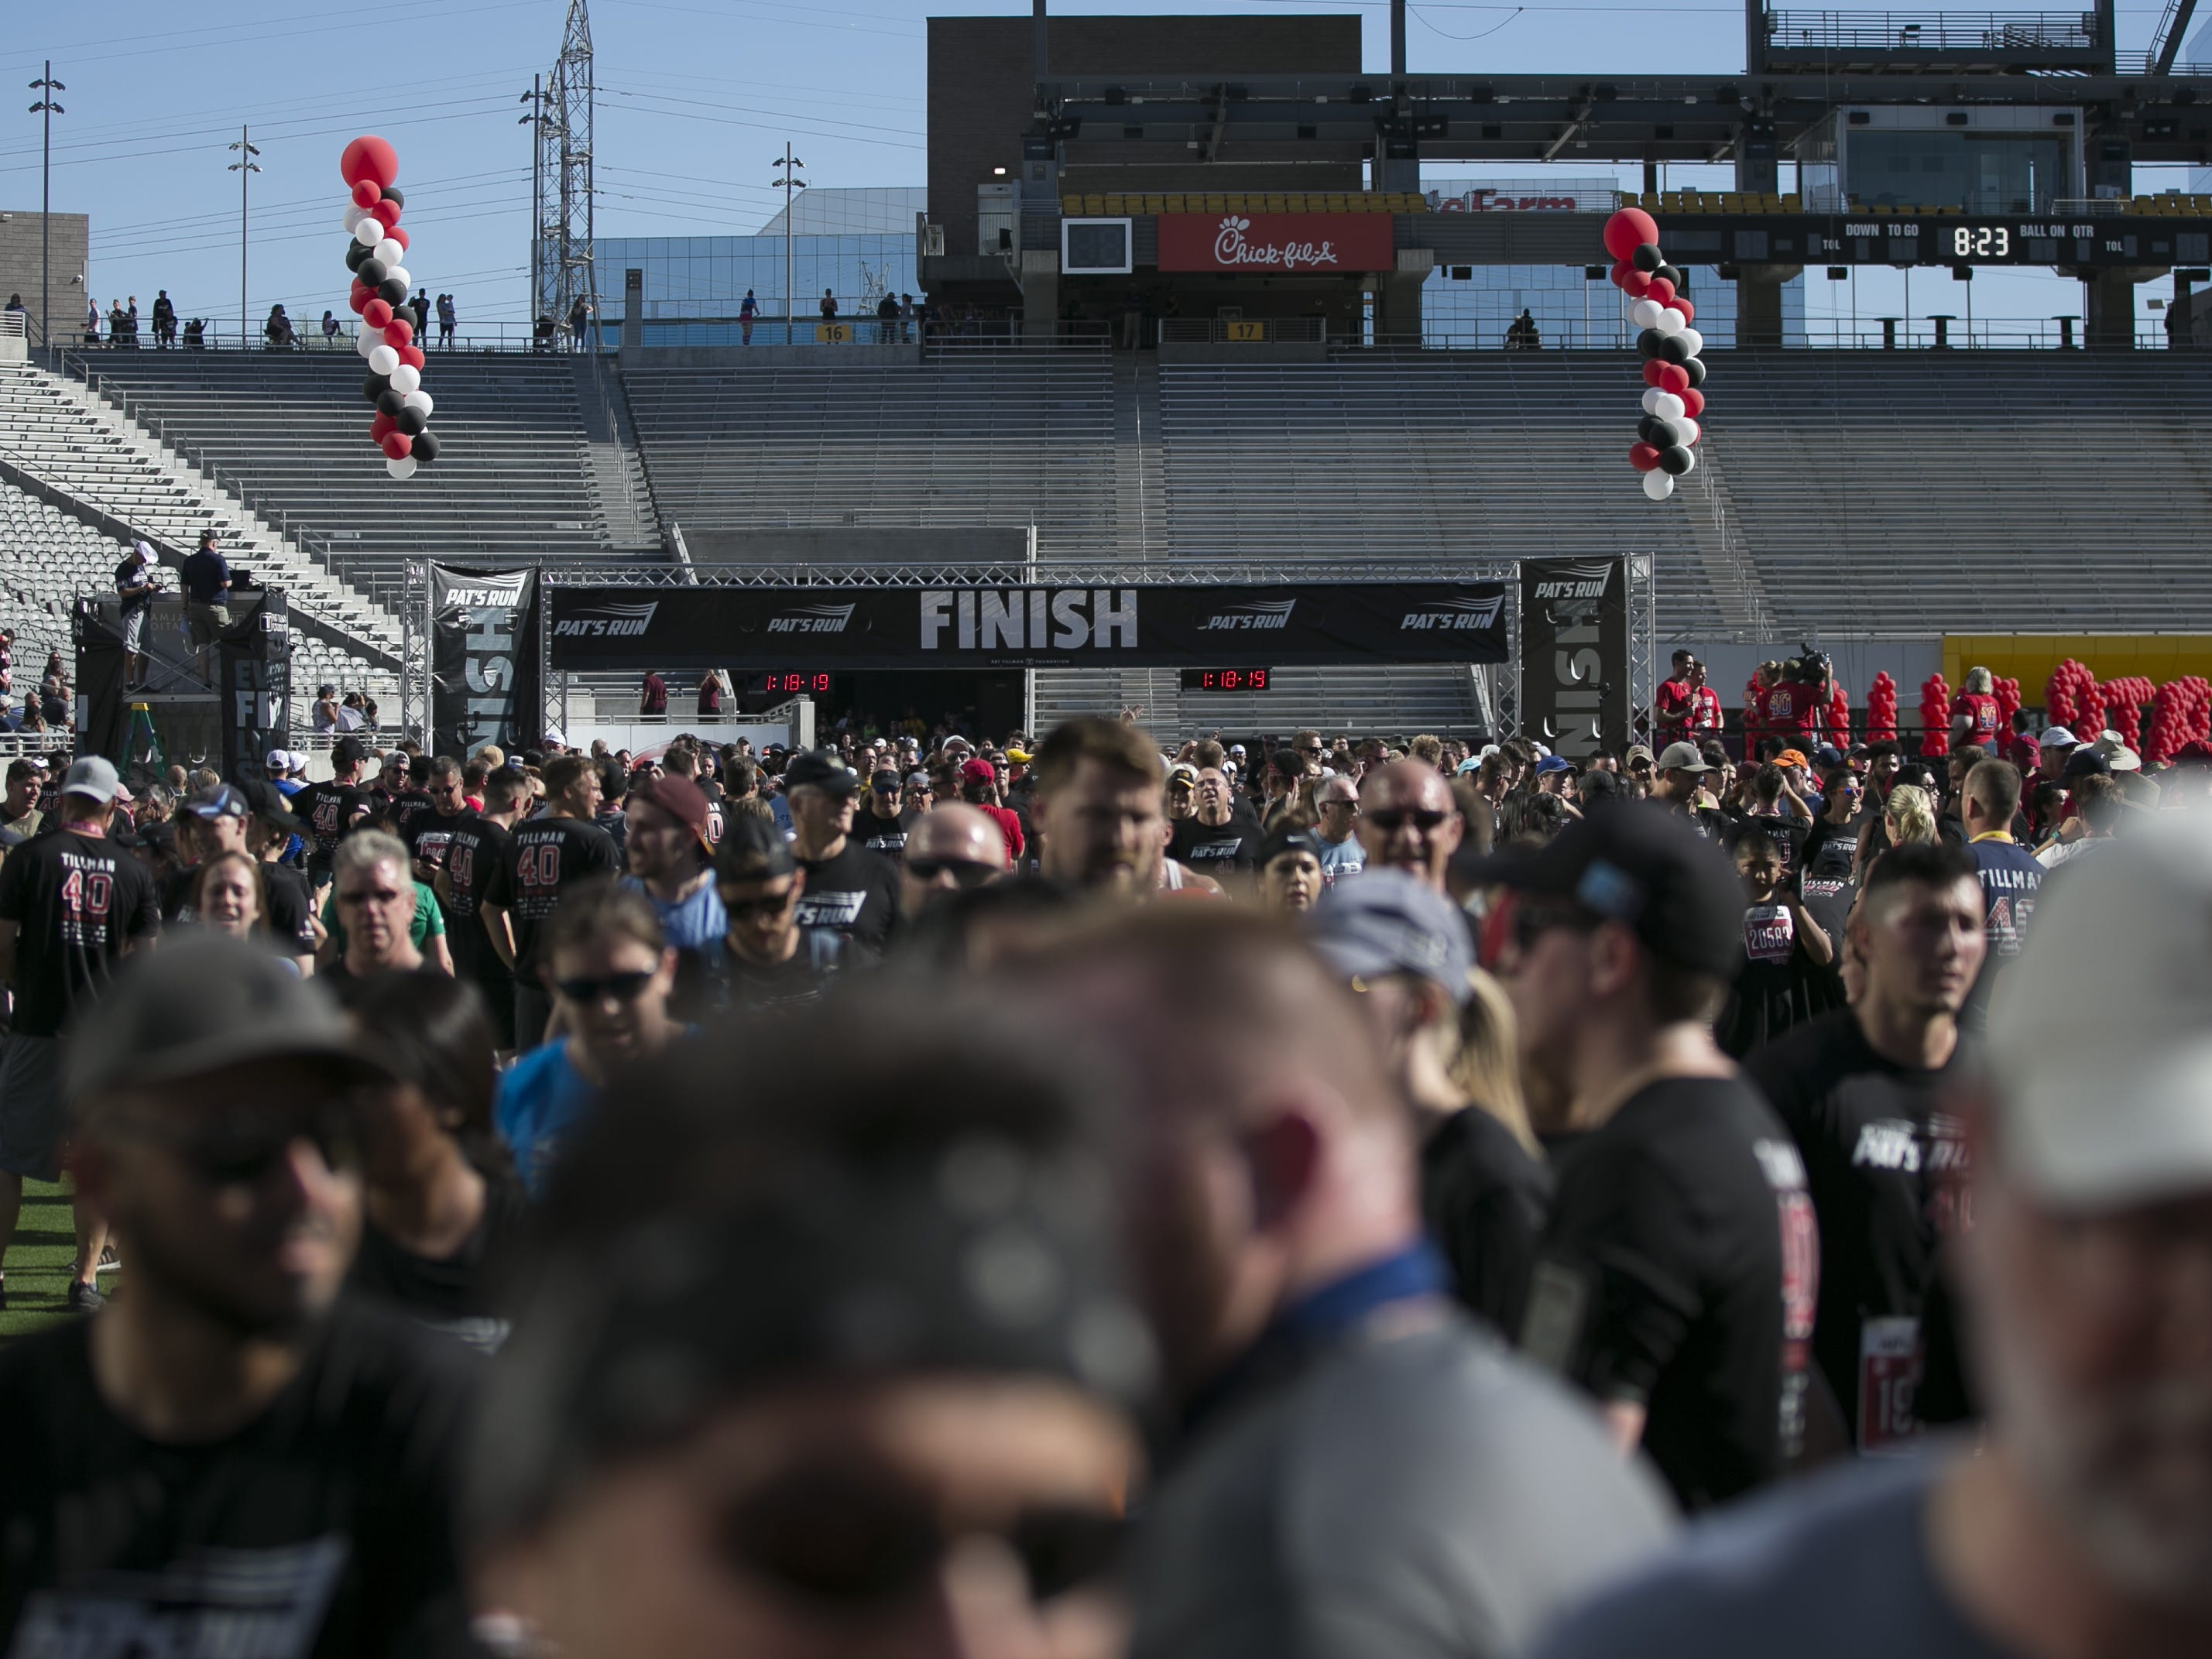 Runners cross the finish line at Pat's Run 2019 in Tempe on April 27, 2019.